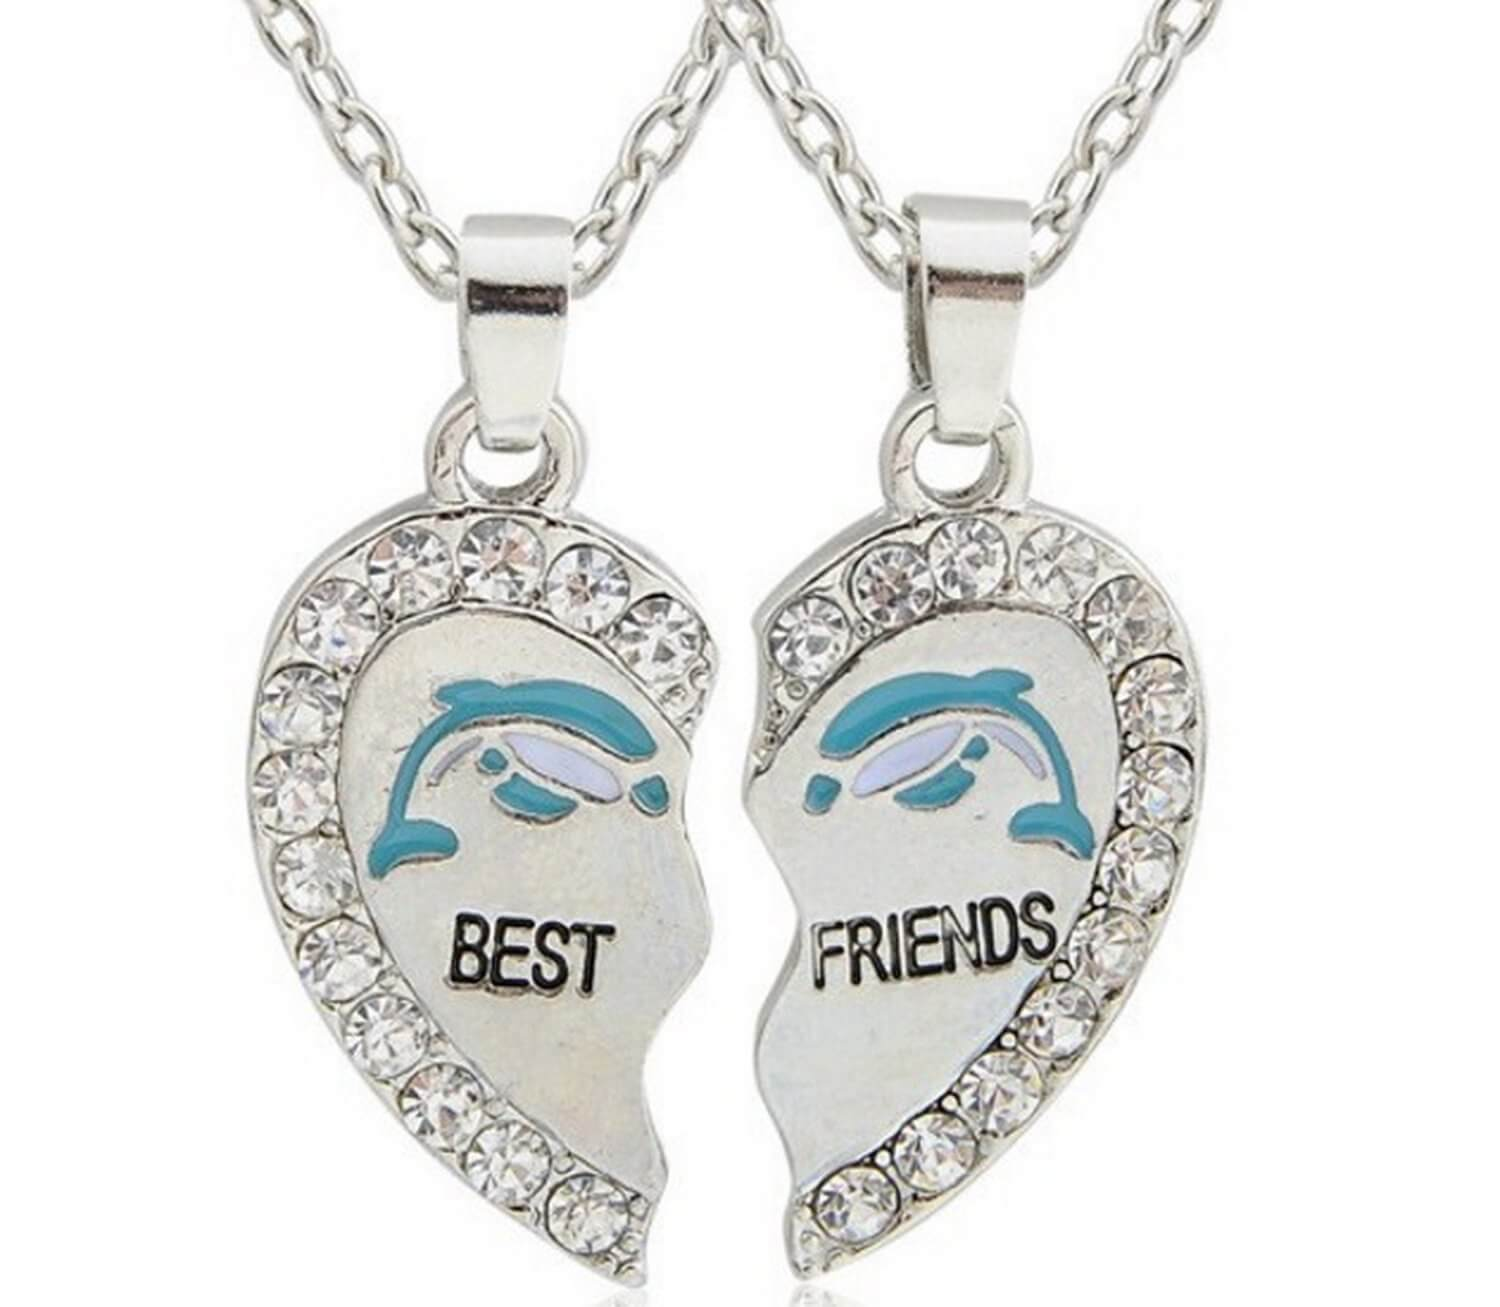 necklace small lockets only product express of closes silver miss hammer friendship memory and amount to ashes memorial love jewelry fit cremation a screw opens urn ash